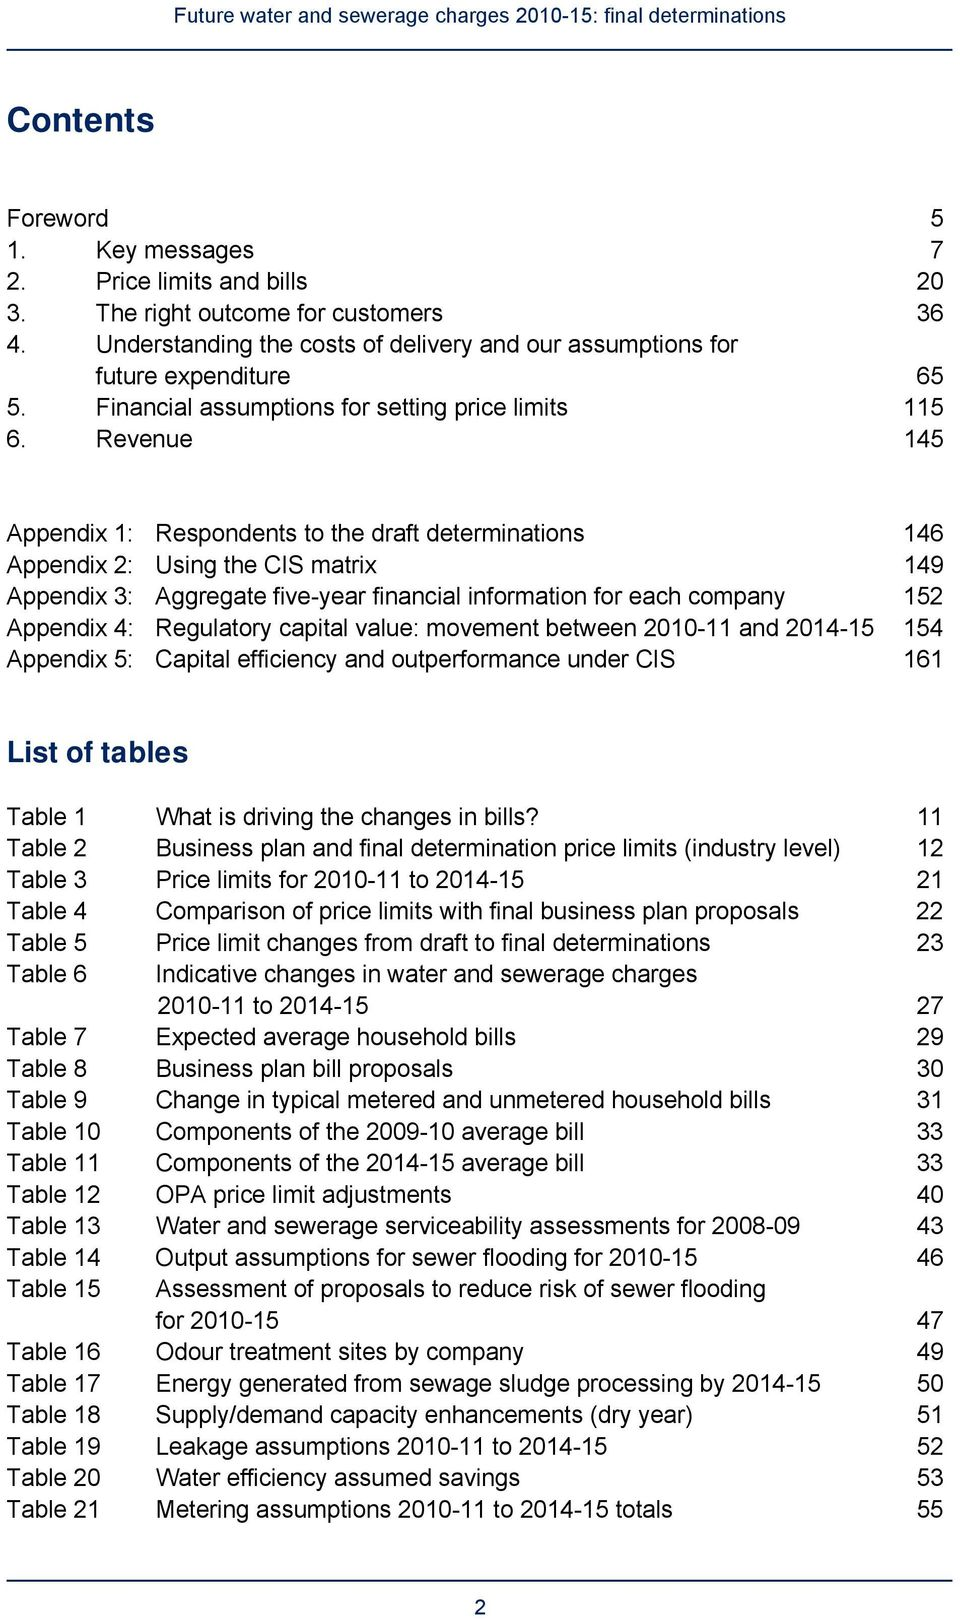 Revenue 145 Appendix 1: Respondents to the draft determinations 146 Appendix 2: Using the CIS matrix 149 Appendix 3: Aggregate five-year financial information for each company 152 Appendix 4: